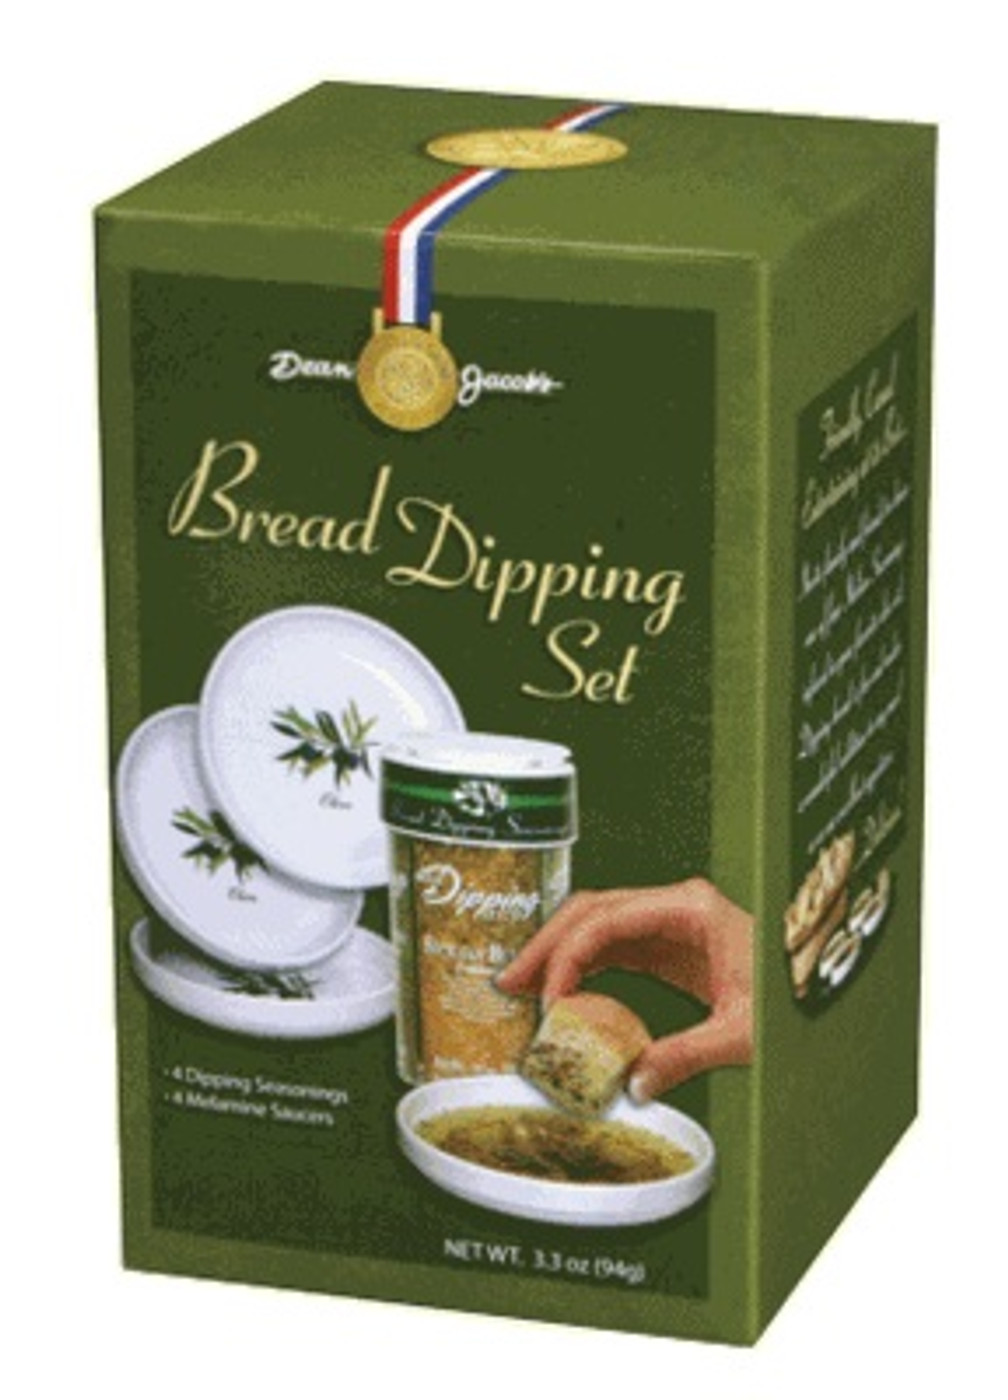 Copy of 5 piece Melamine Bread Dipping Set 4.0 Oz Large